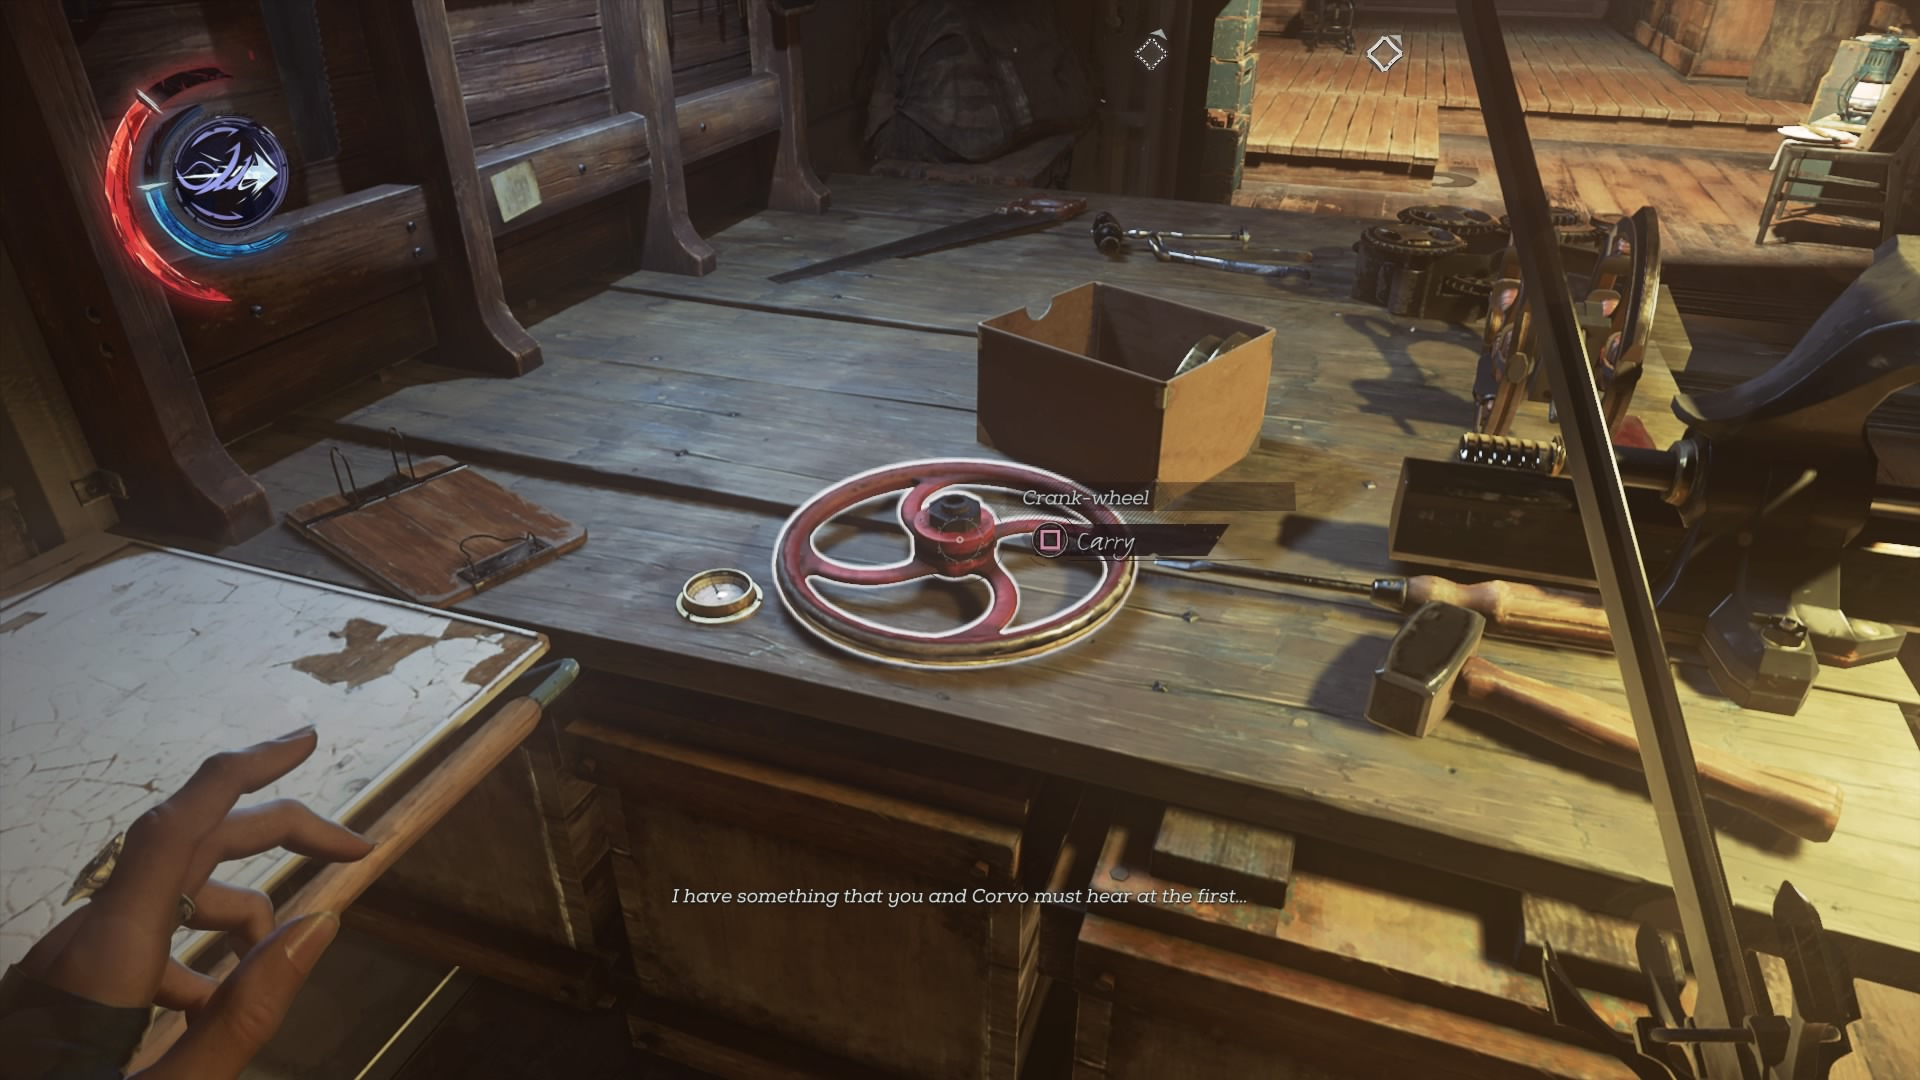 electroshock machine dishonored 2